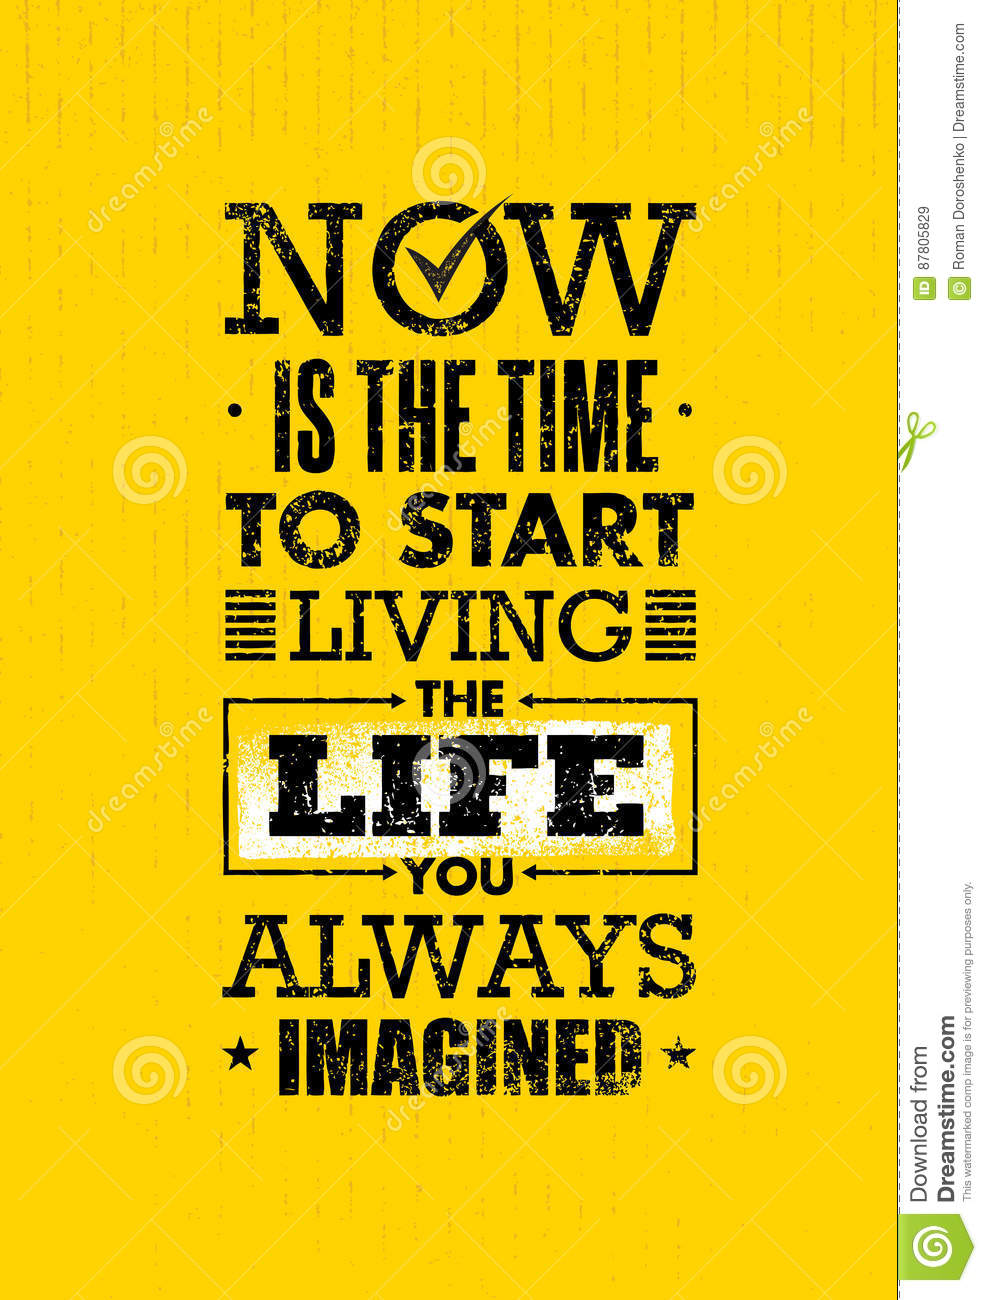 Now Is The Time To Start Living The Life You Always Imagined Motivation Quote. Creative Inspiration Vector Typography